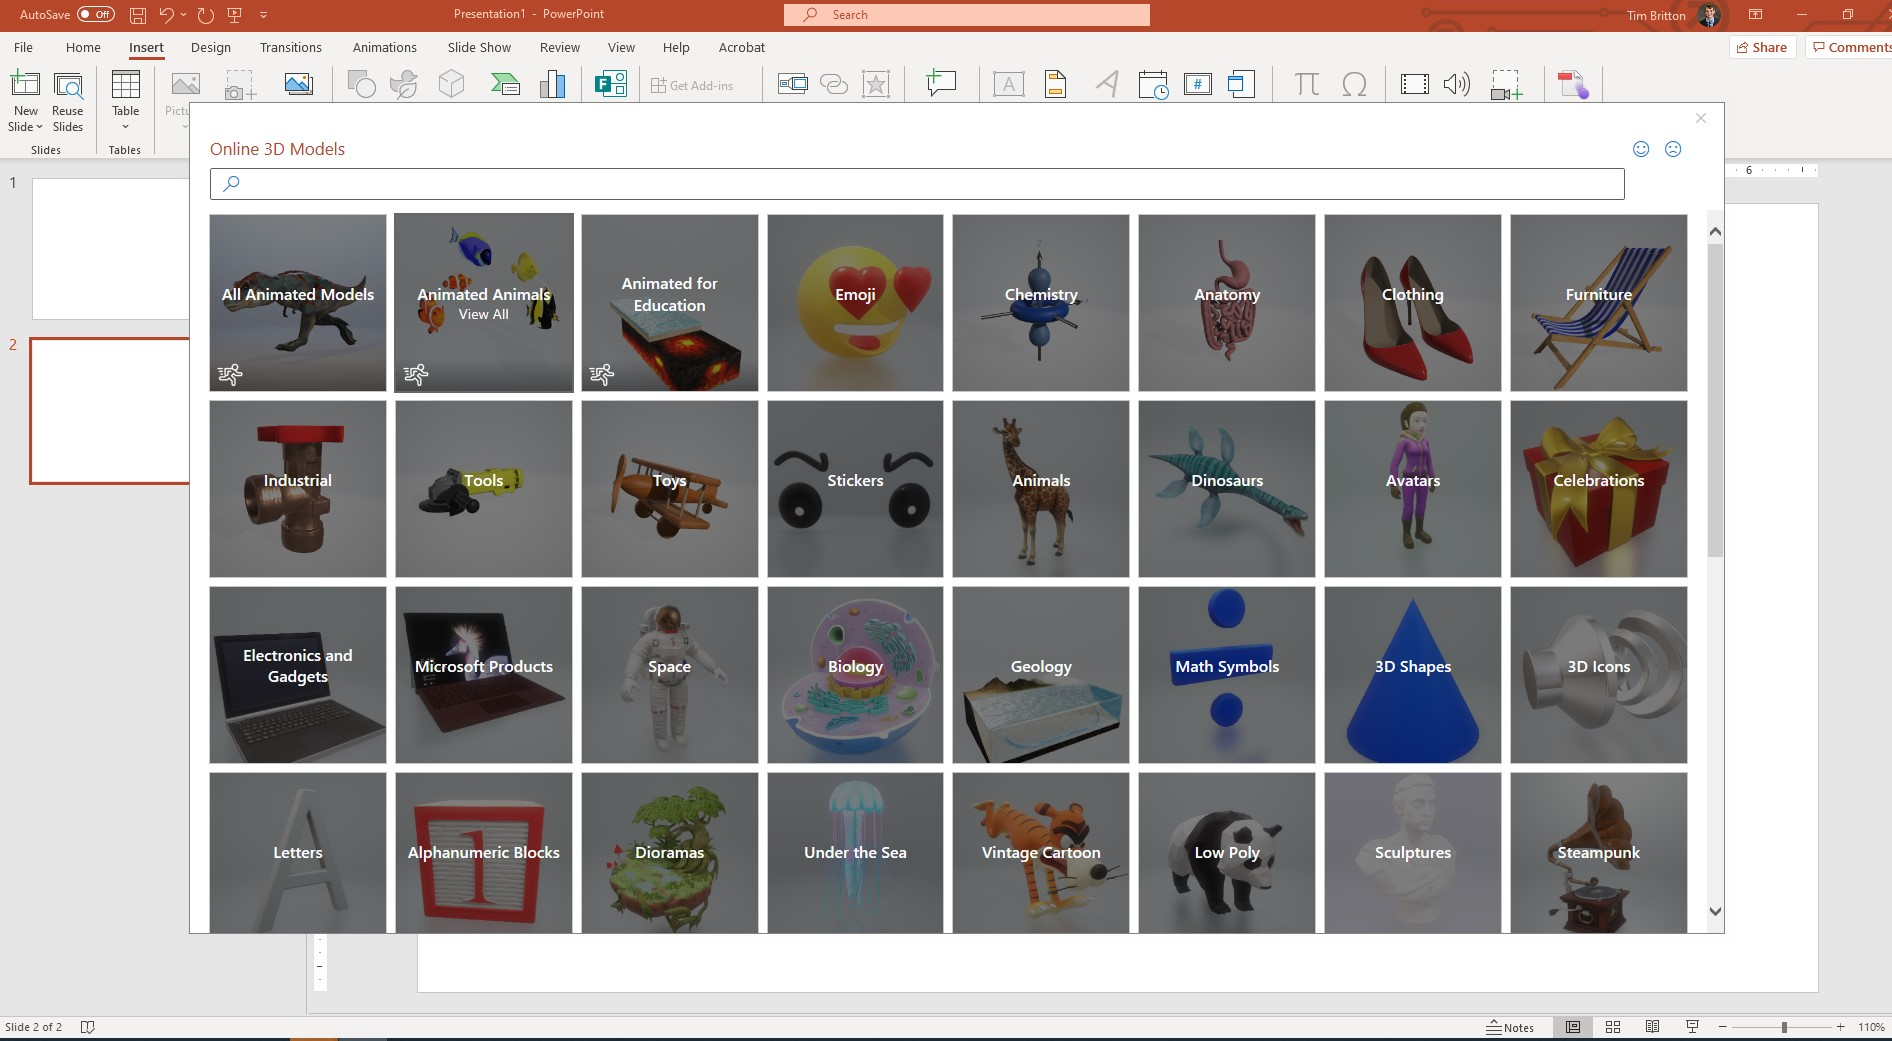 Do You Need Images that Pop in Your PowerPoint? Try New 3D Models